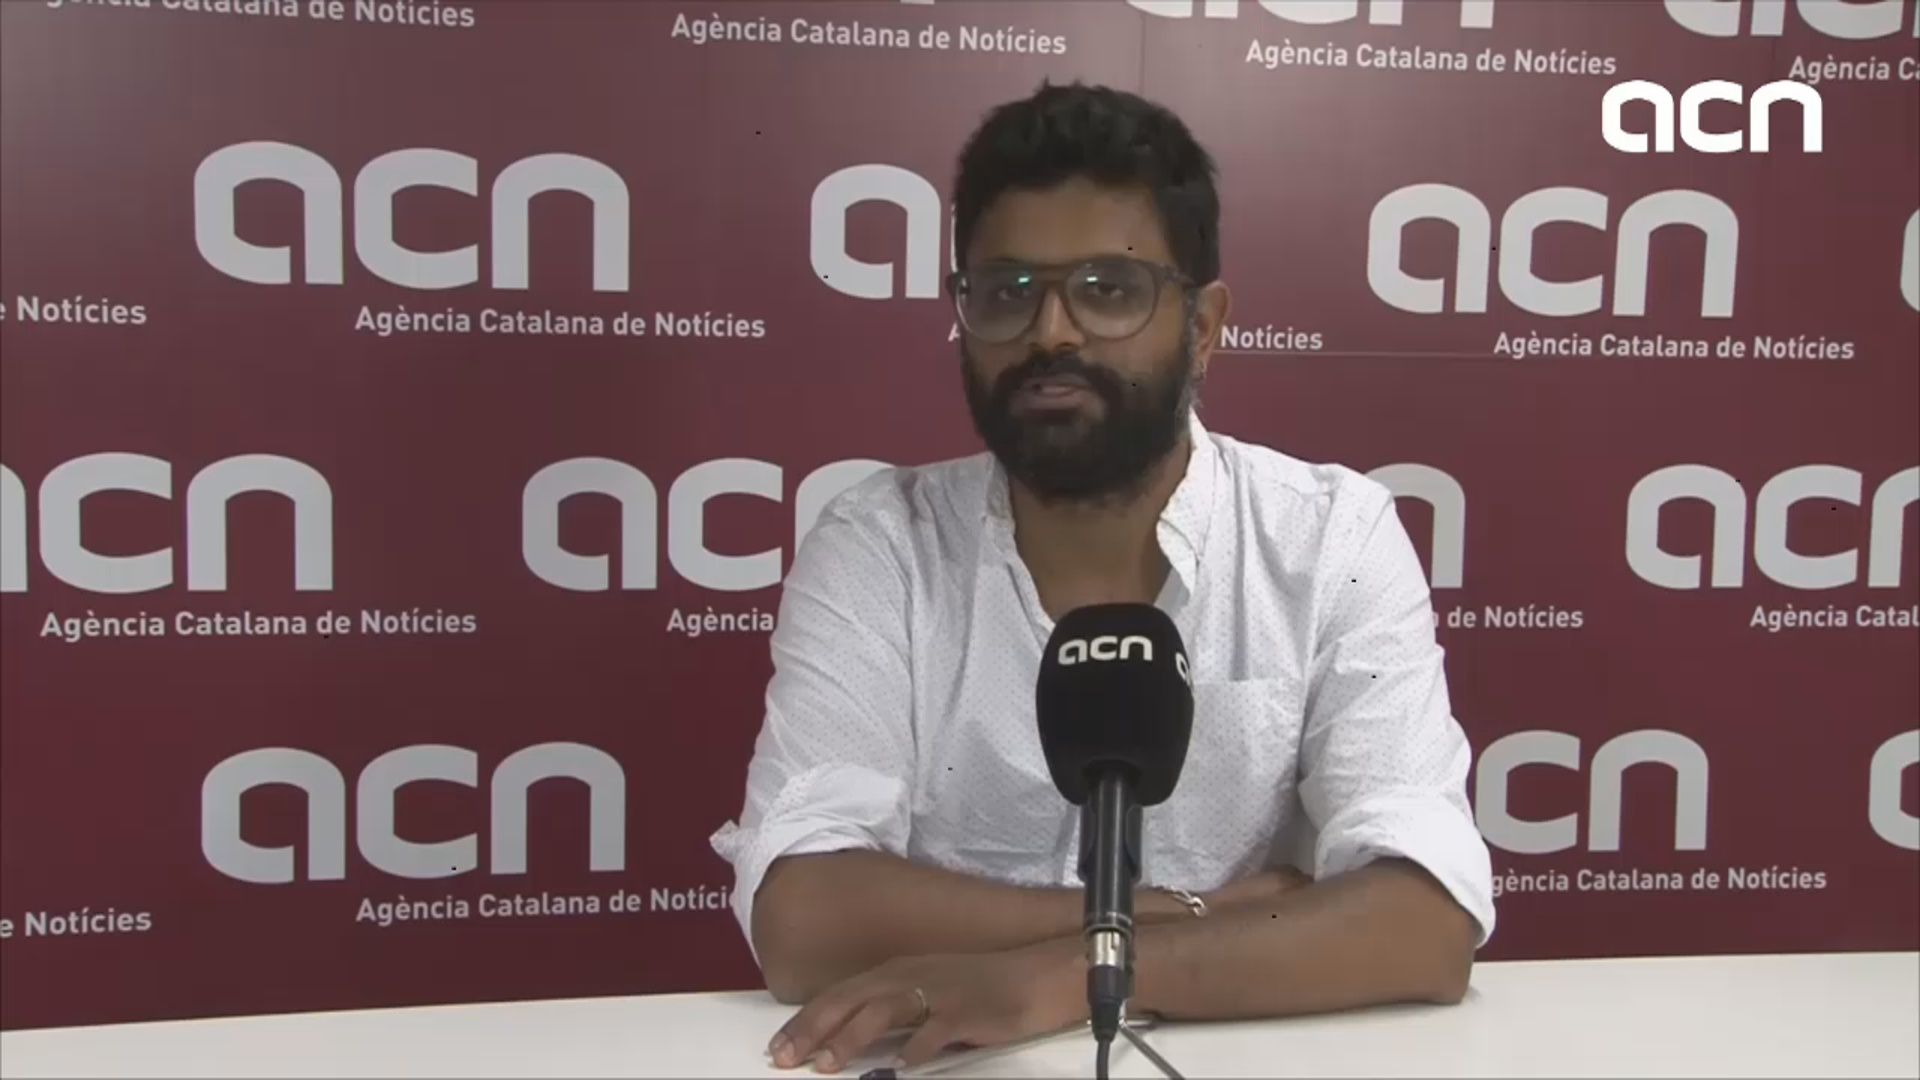 Kartik Raj speaks to the Catalan News Agency